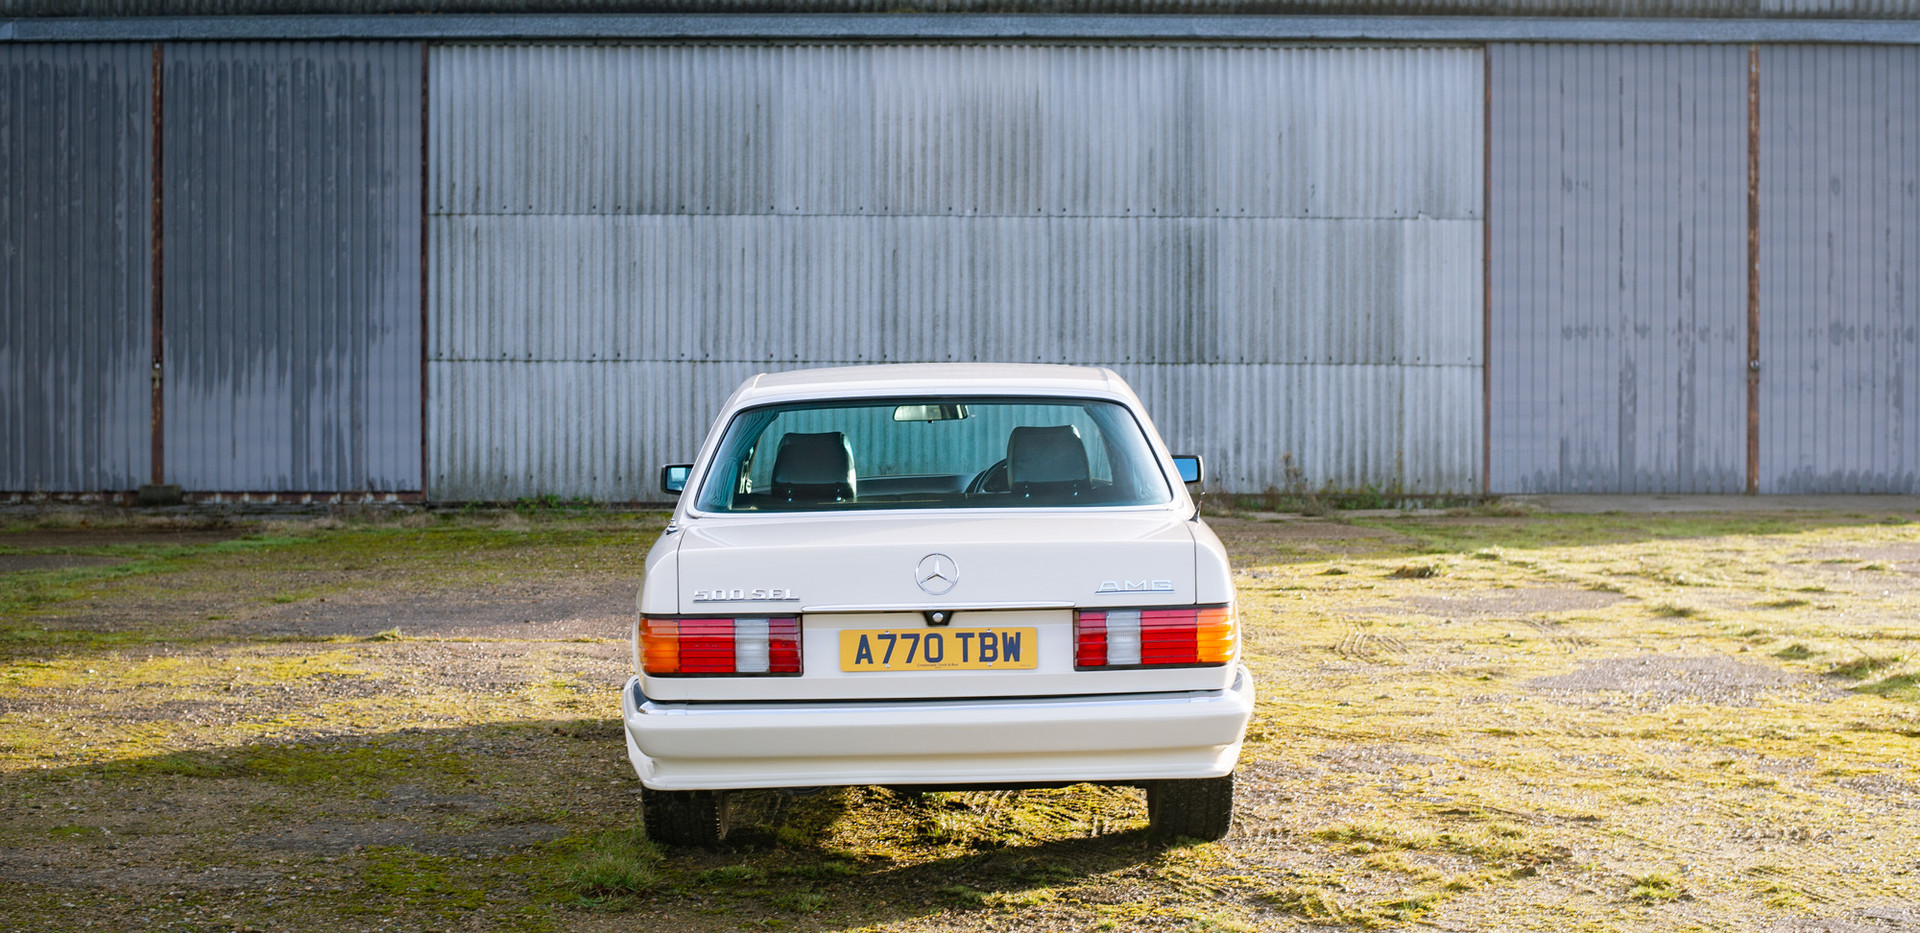 W126 Cream 500SEL for sale uk-6.jpg